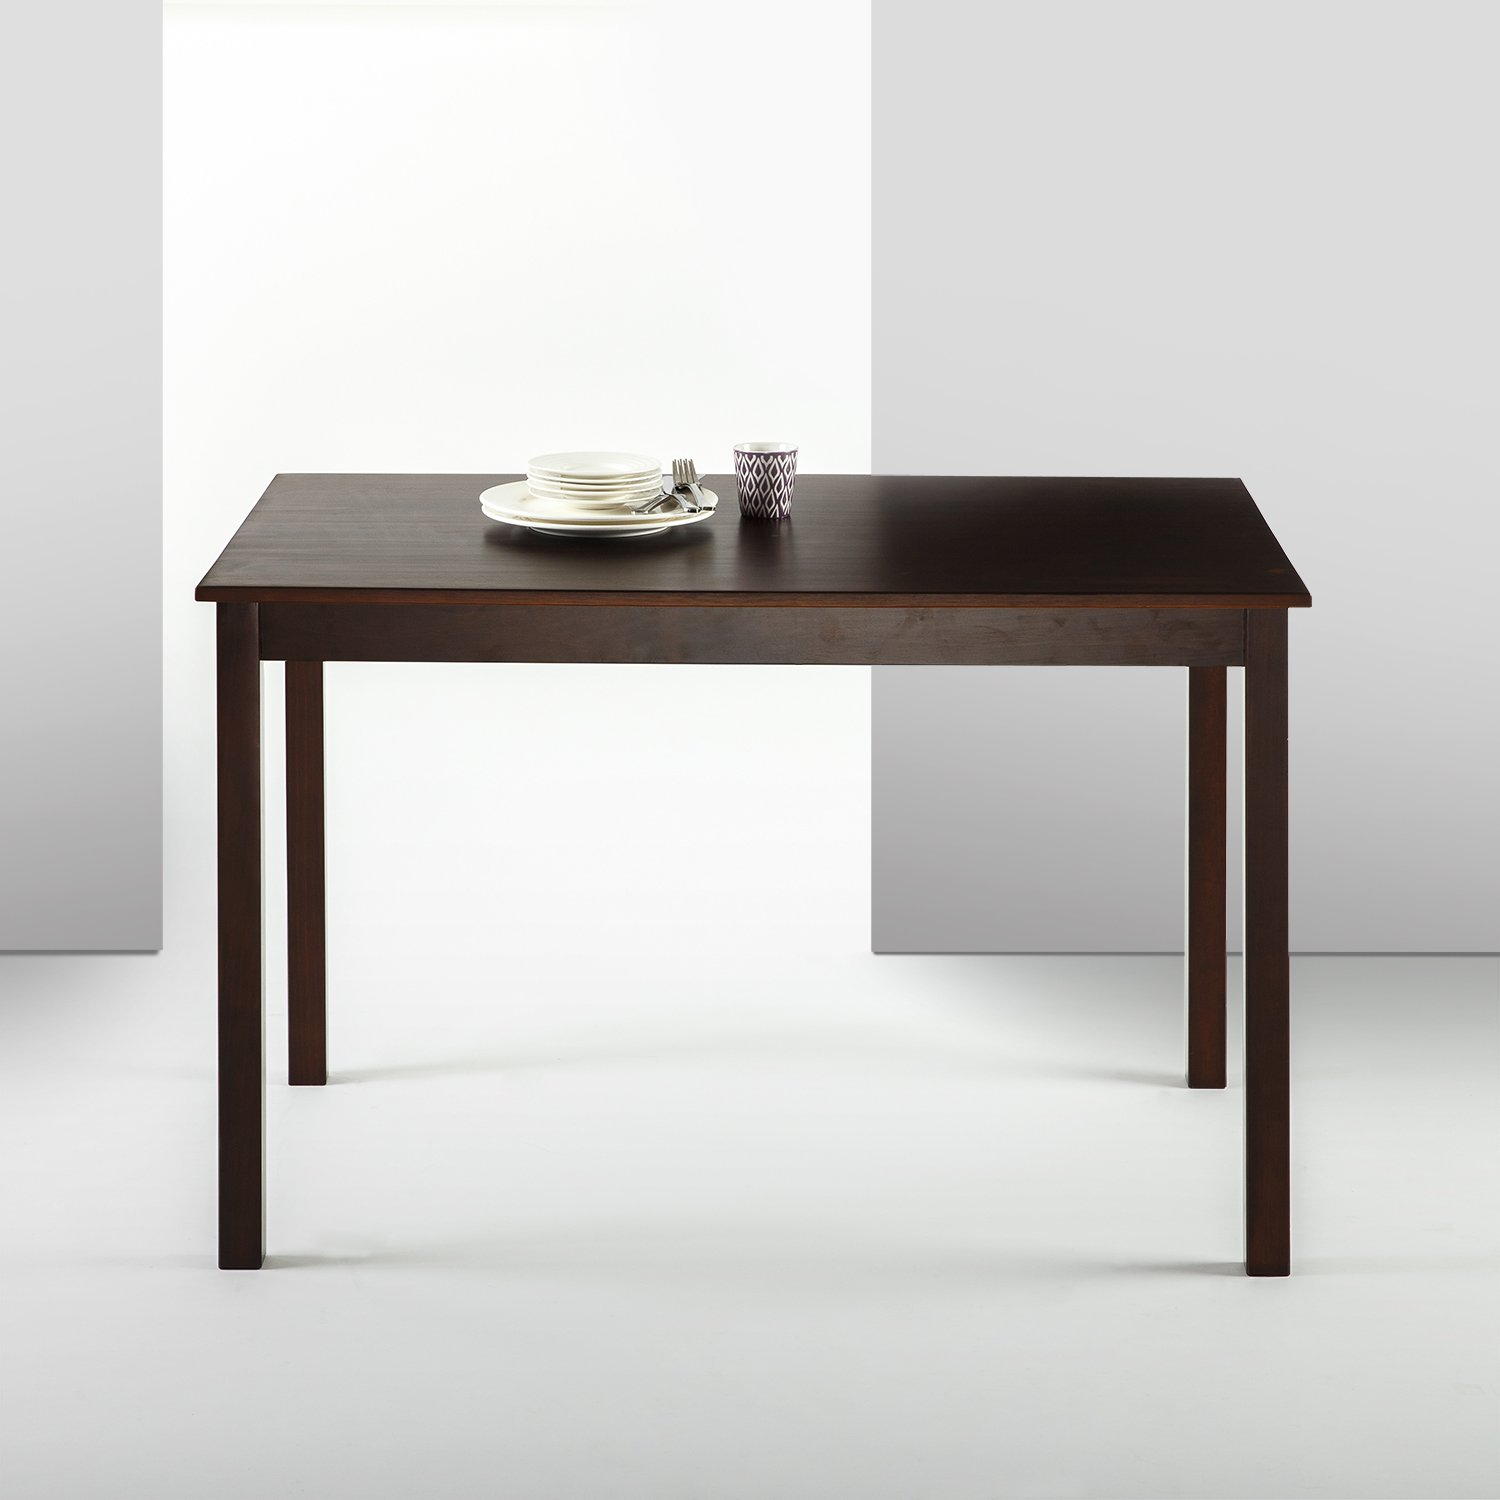 Zinus Espresso Wood Dining Table/Table Only